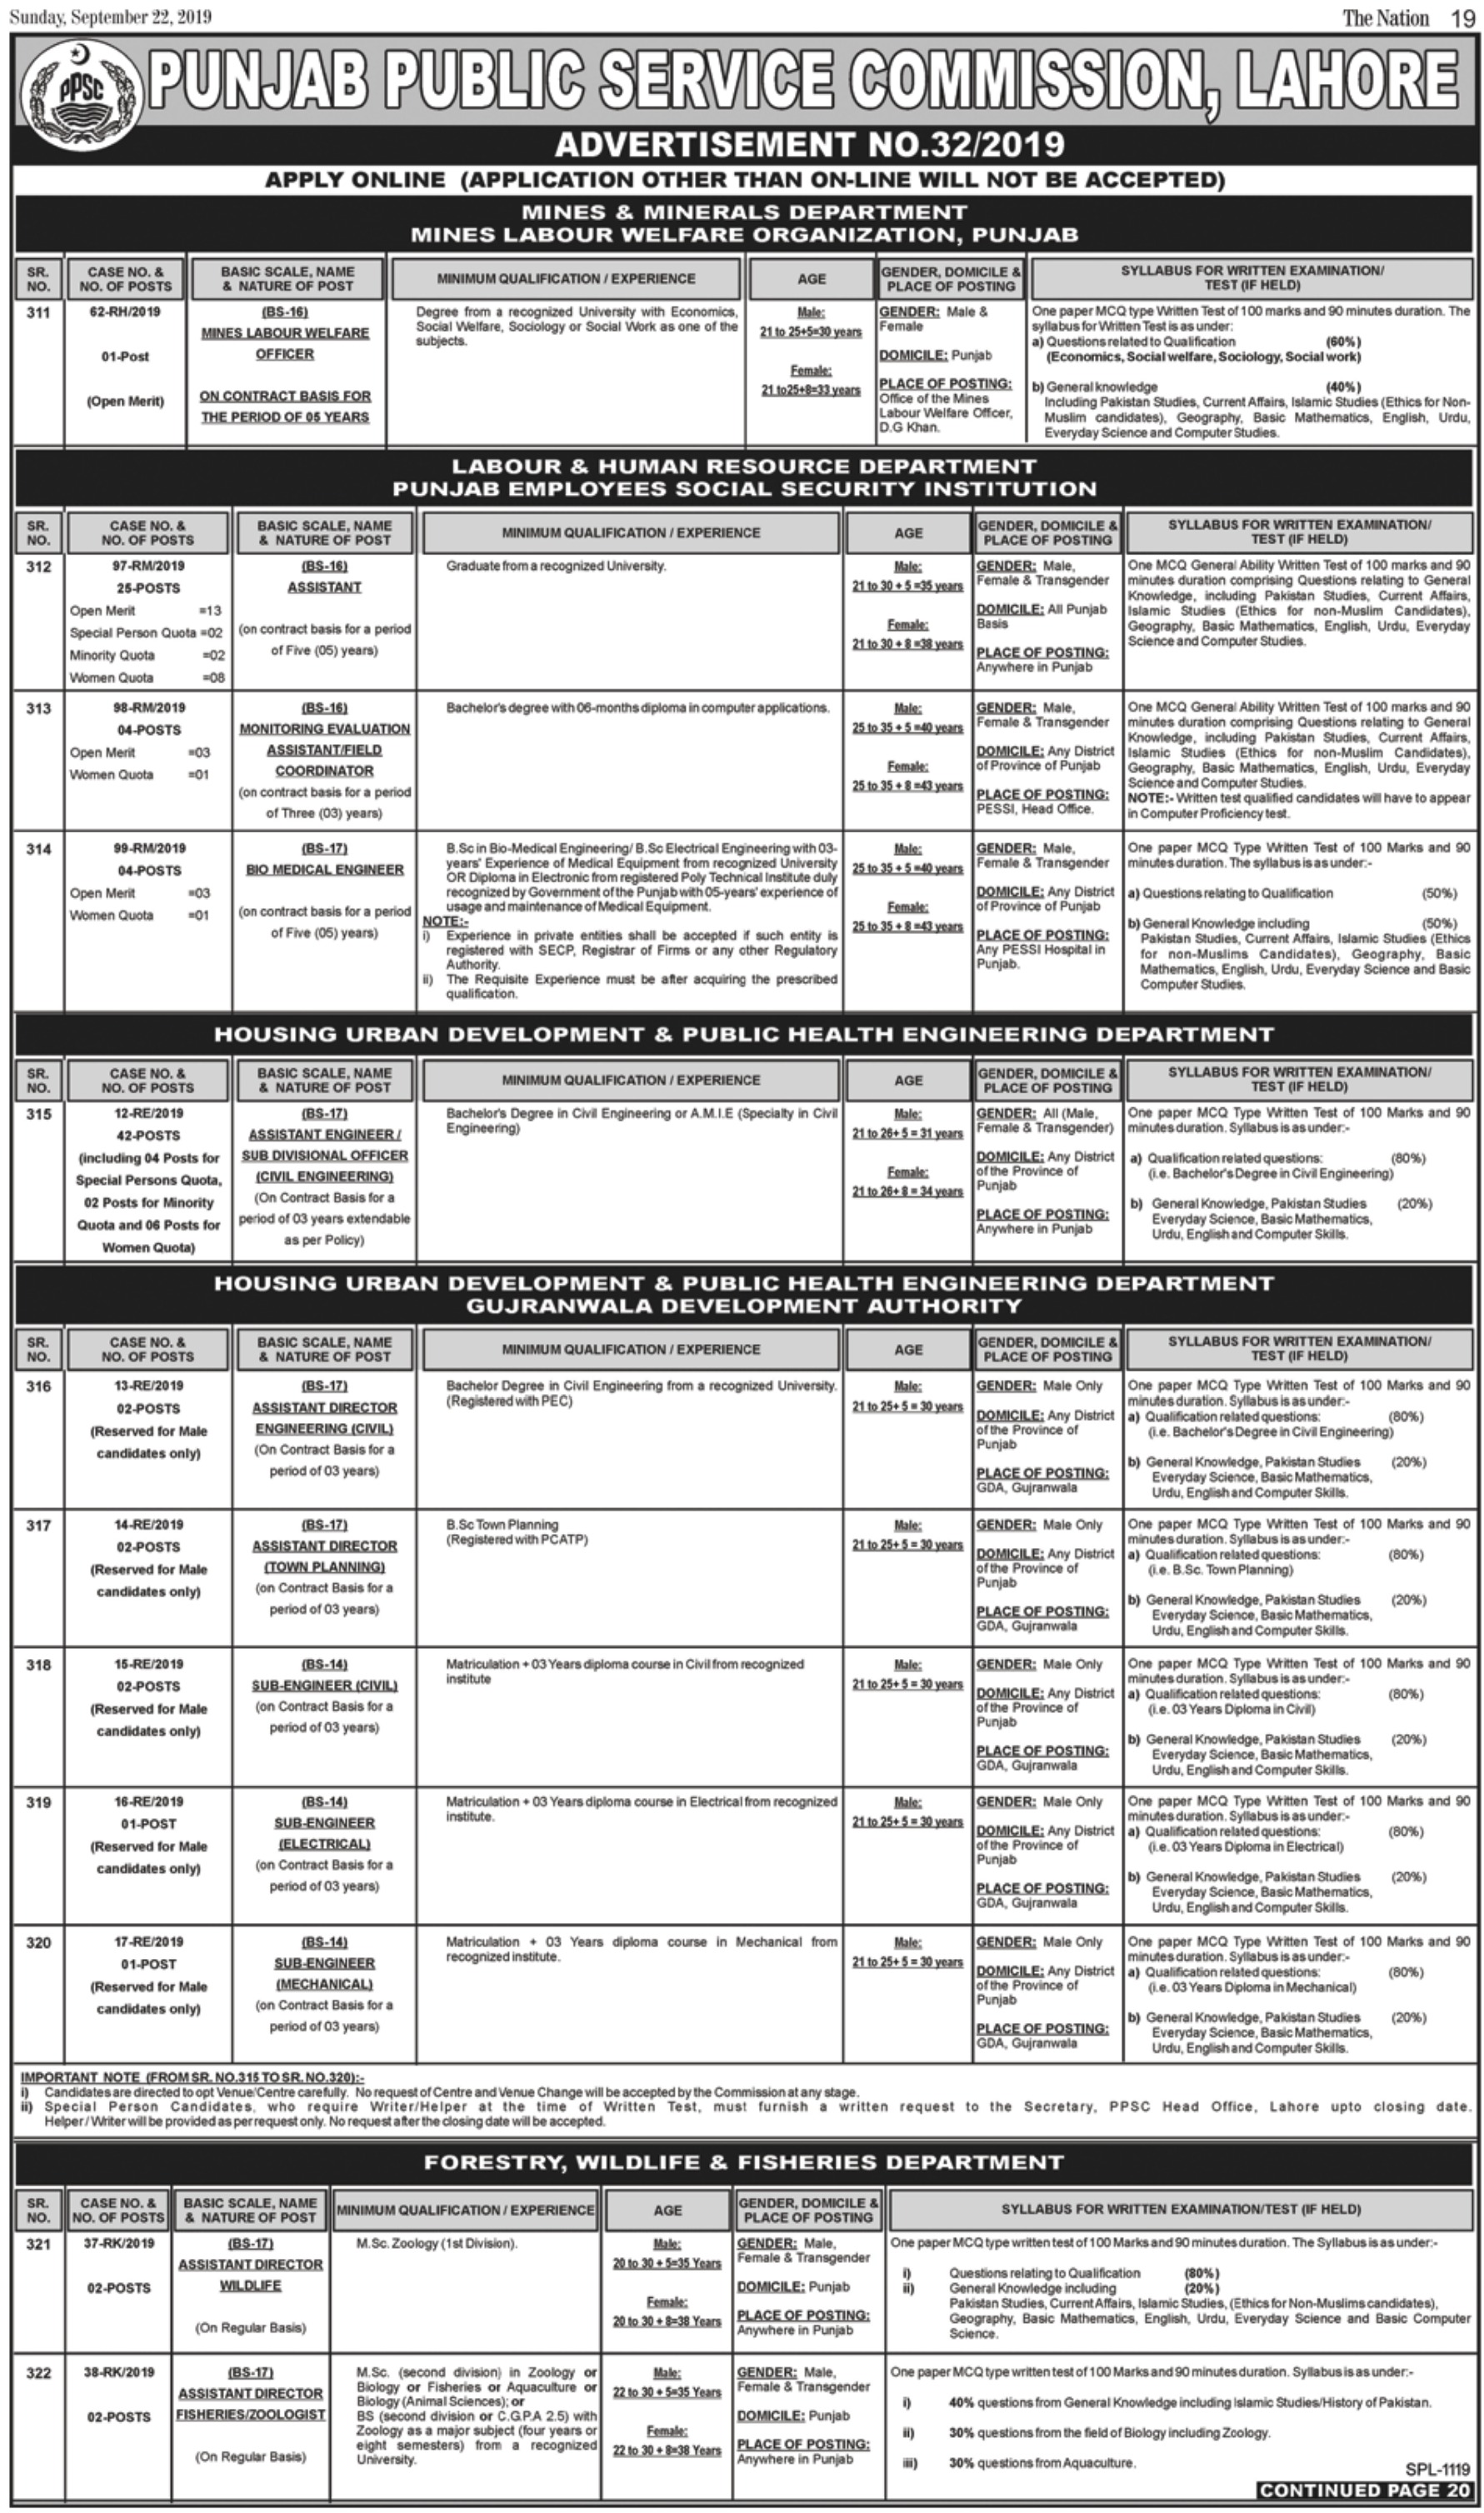 PPSC Today Jobs 2019